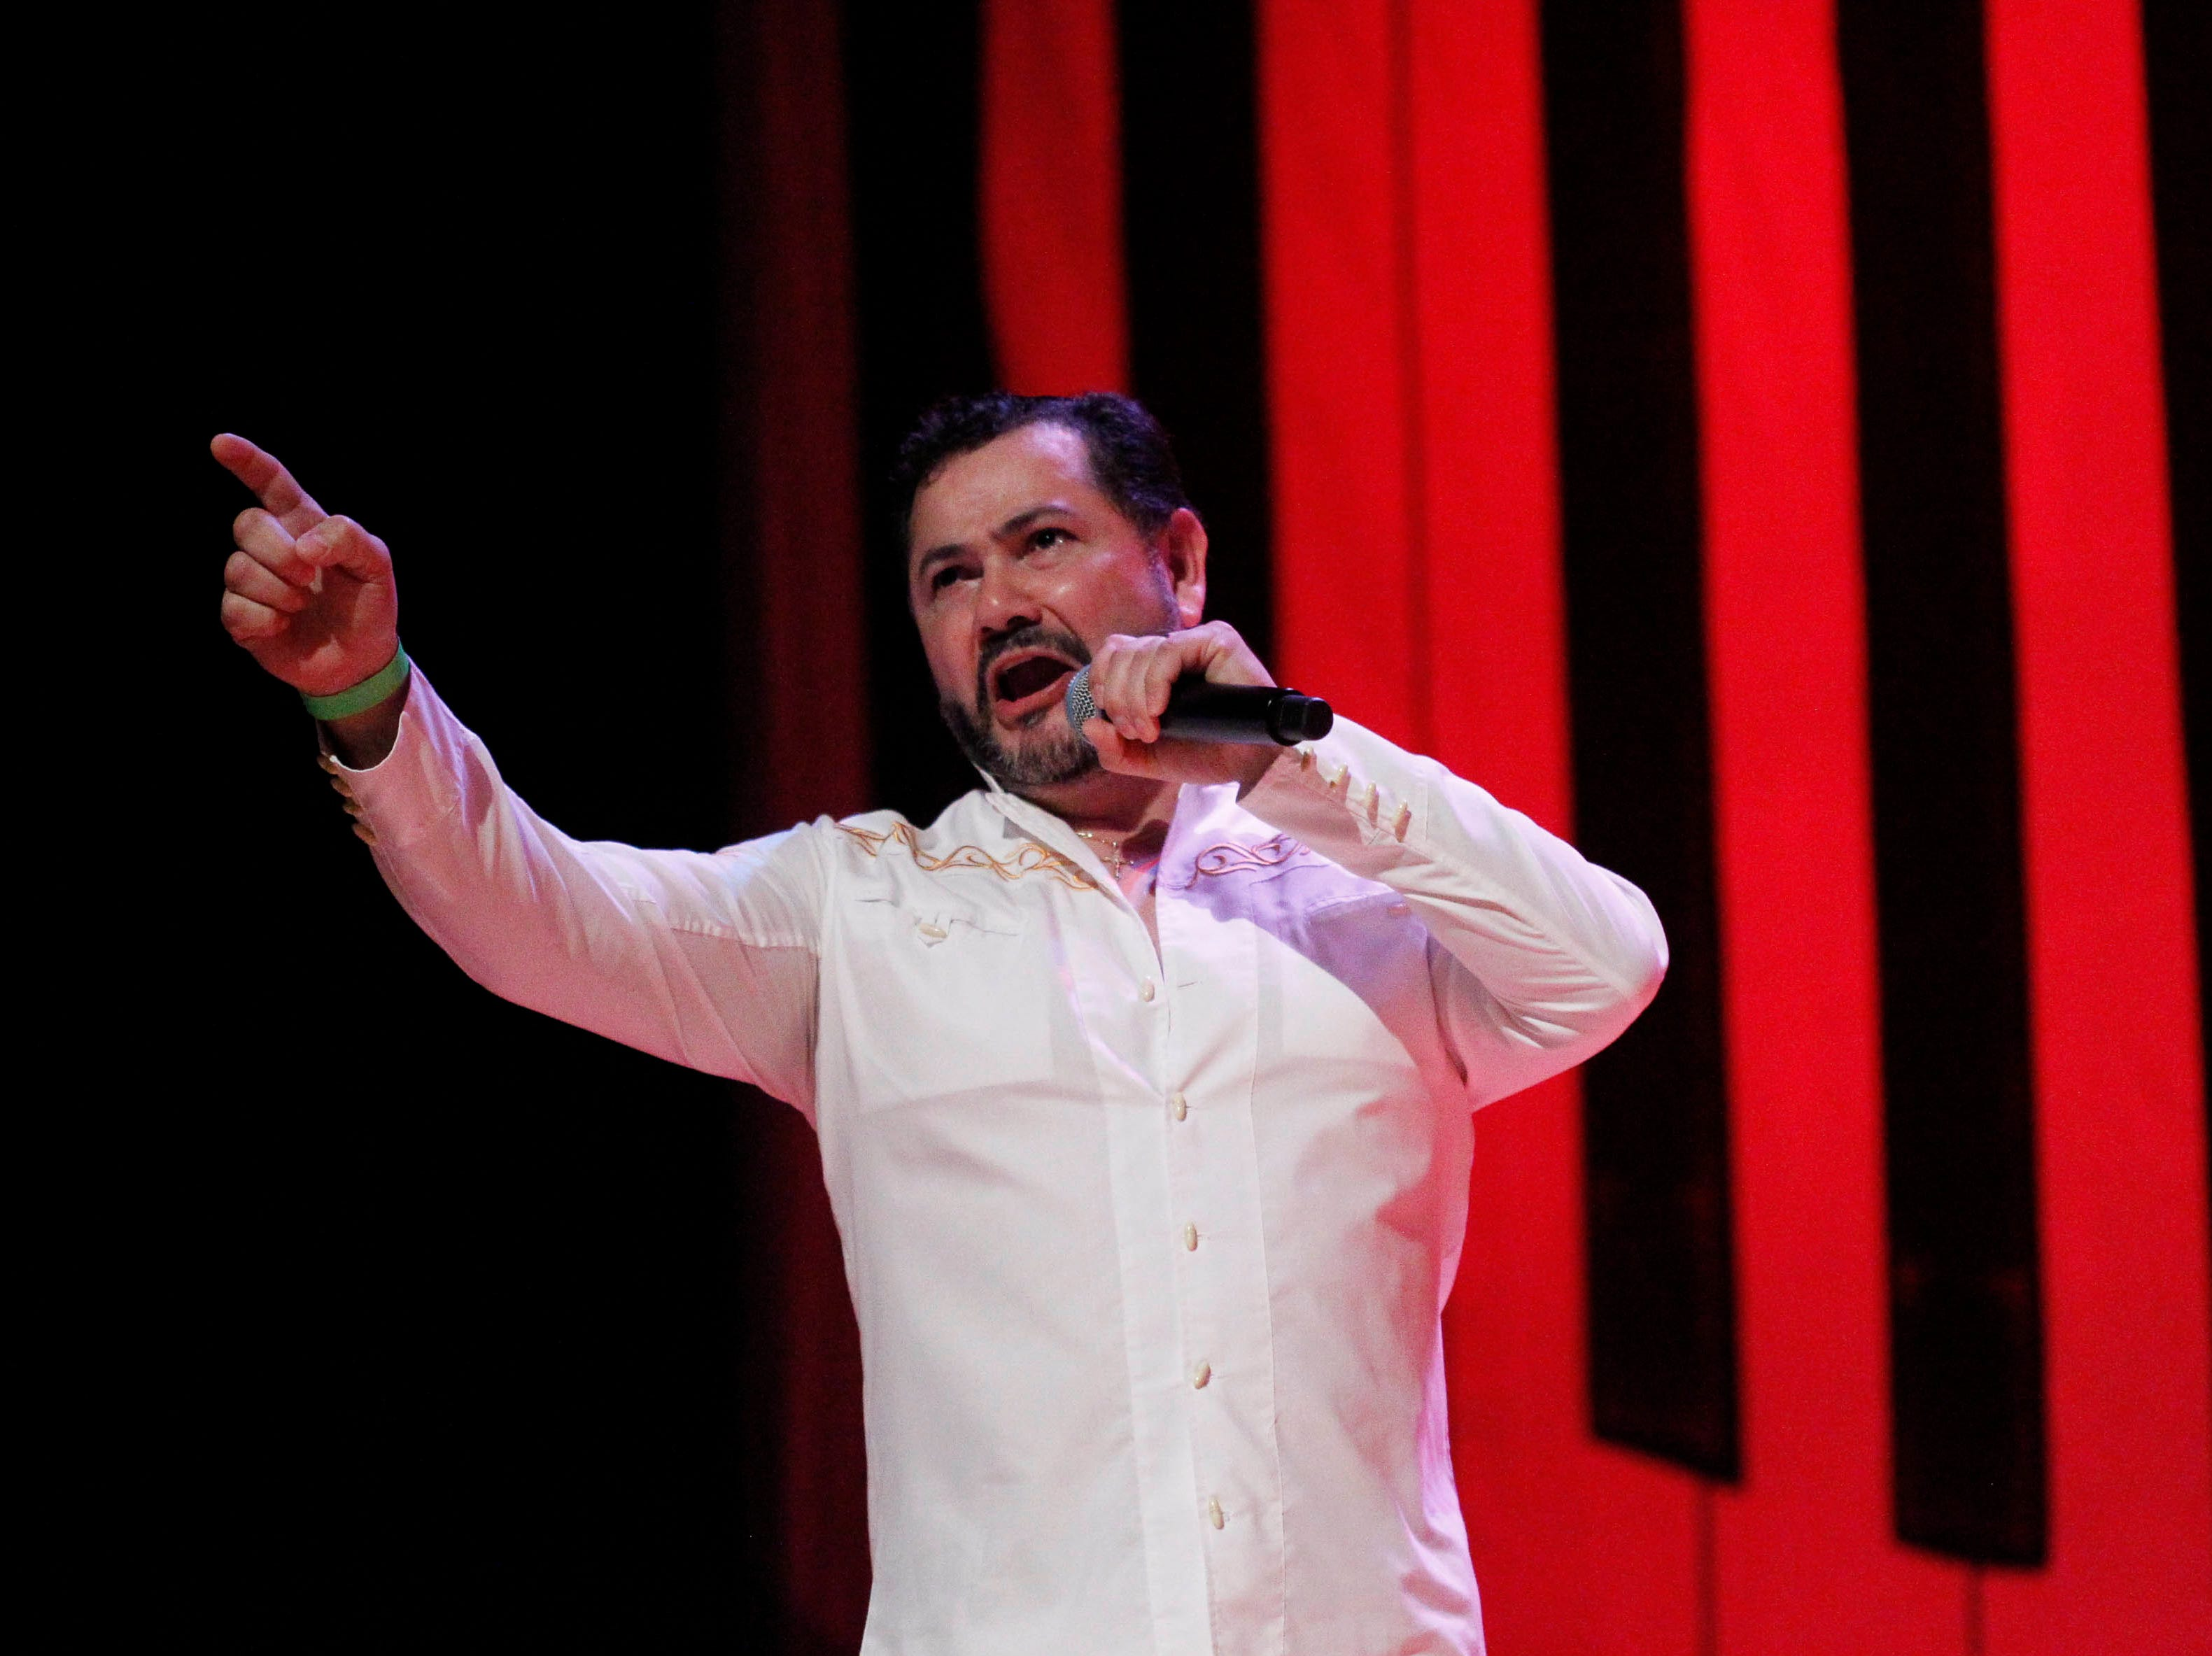 Félix Martinez sings during the 12th annual Noche Bohemia at Sherwood Hall on Saturday, April 27, 2019 in Salinas, Calif.